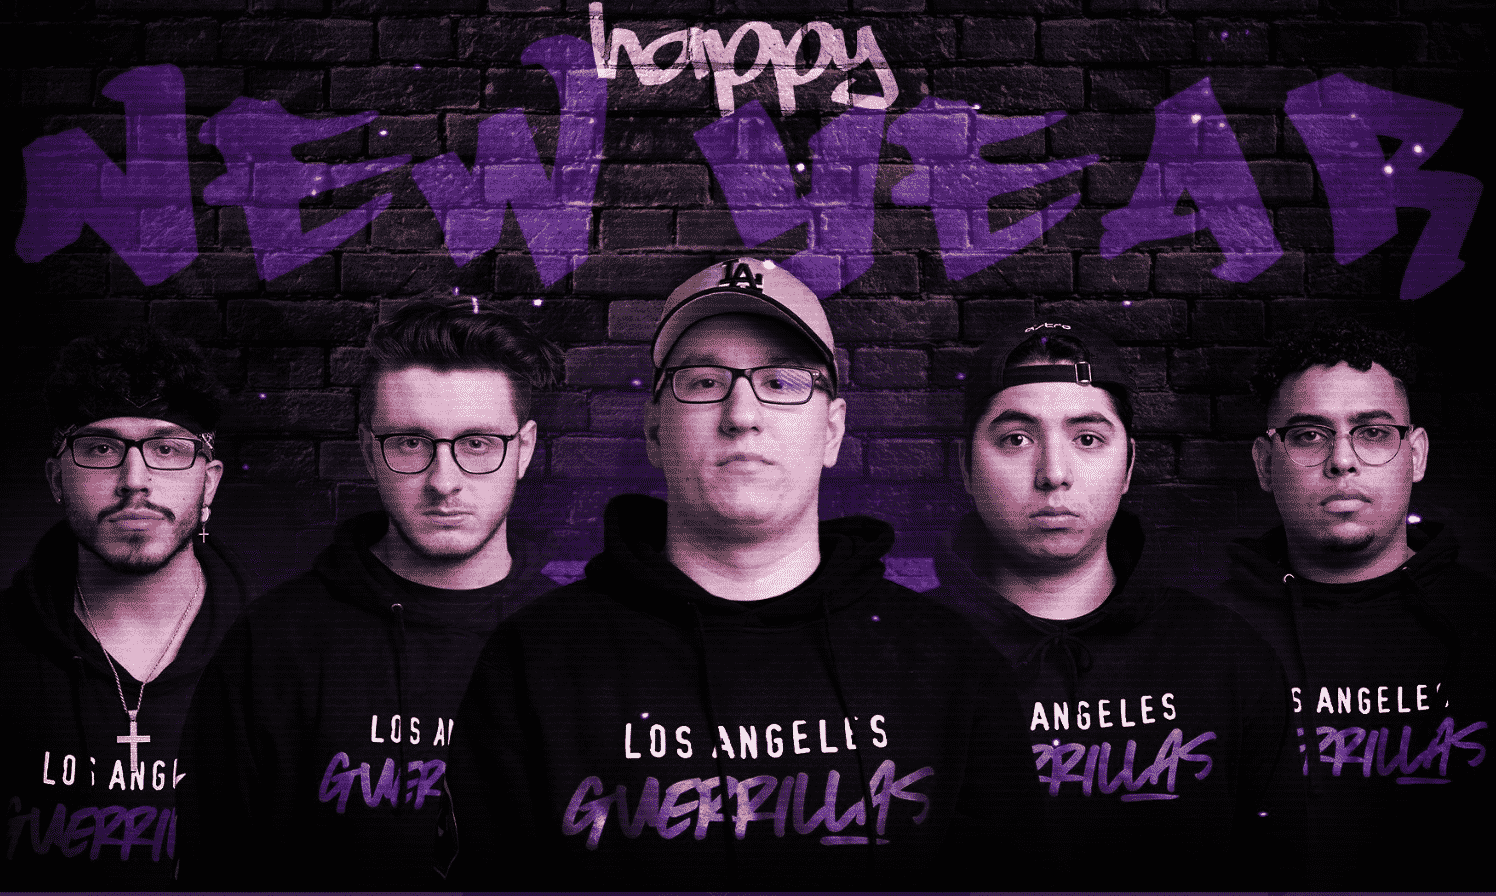 Los Angeles Guerrillas roster aches aqua decemate lacefield saints